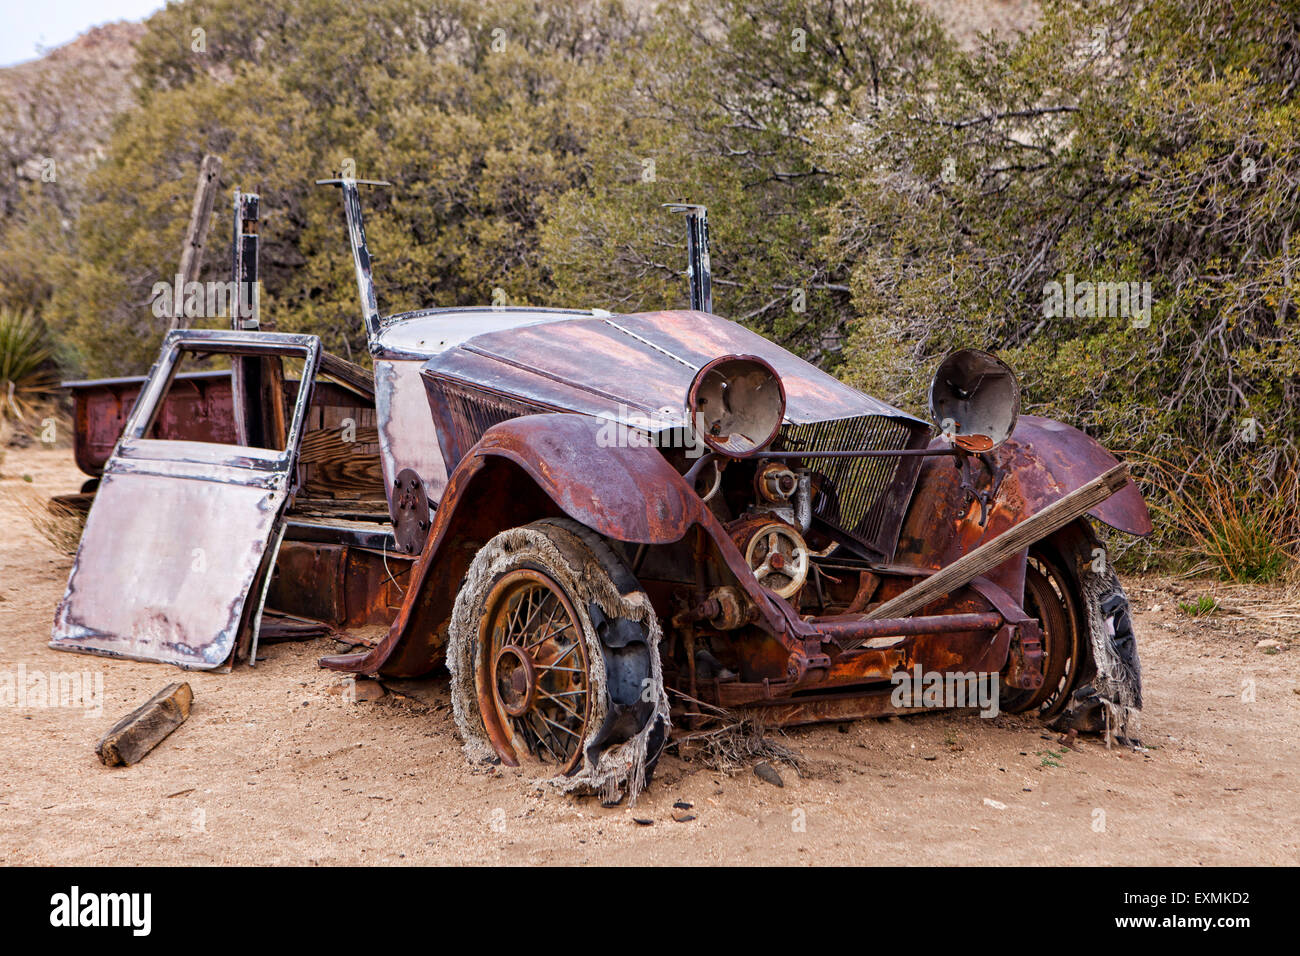 an abandoned car left over from the wall street mill and mine in joshua tree national park california usa